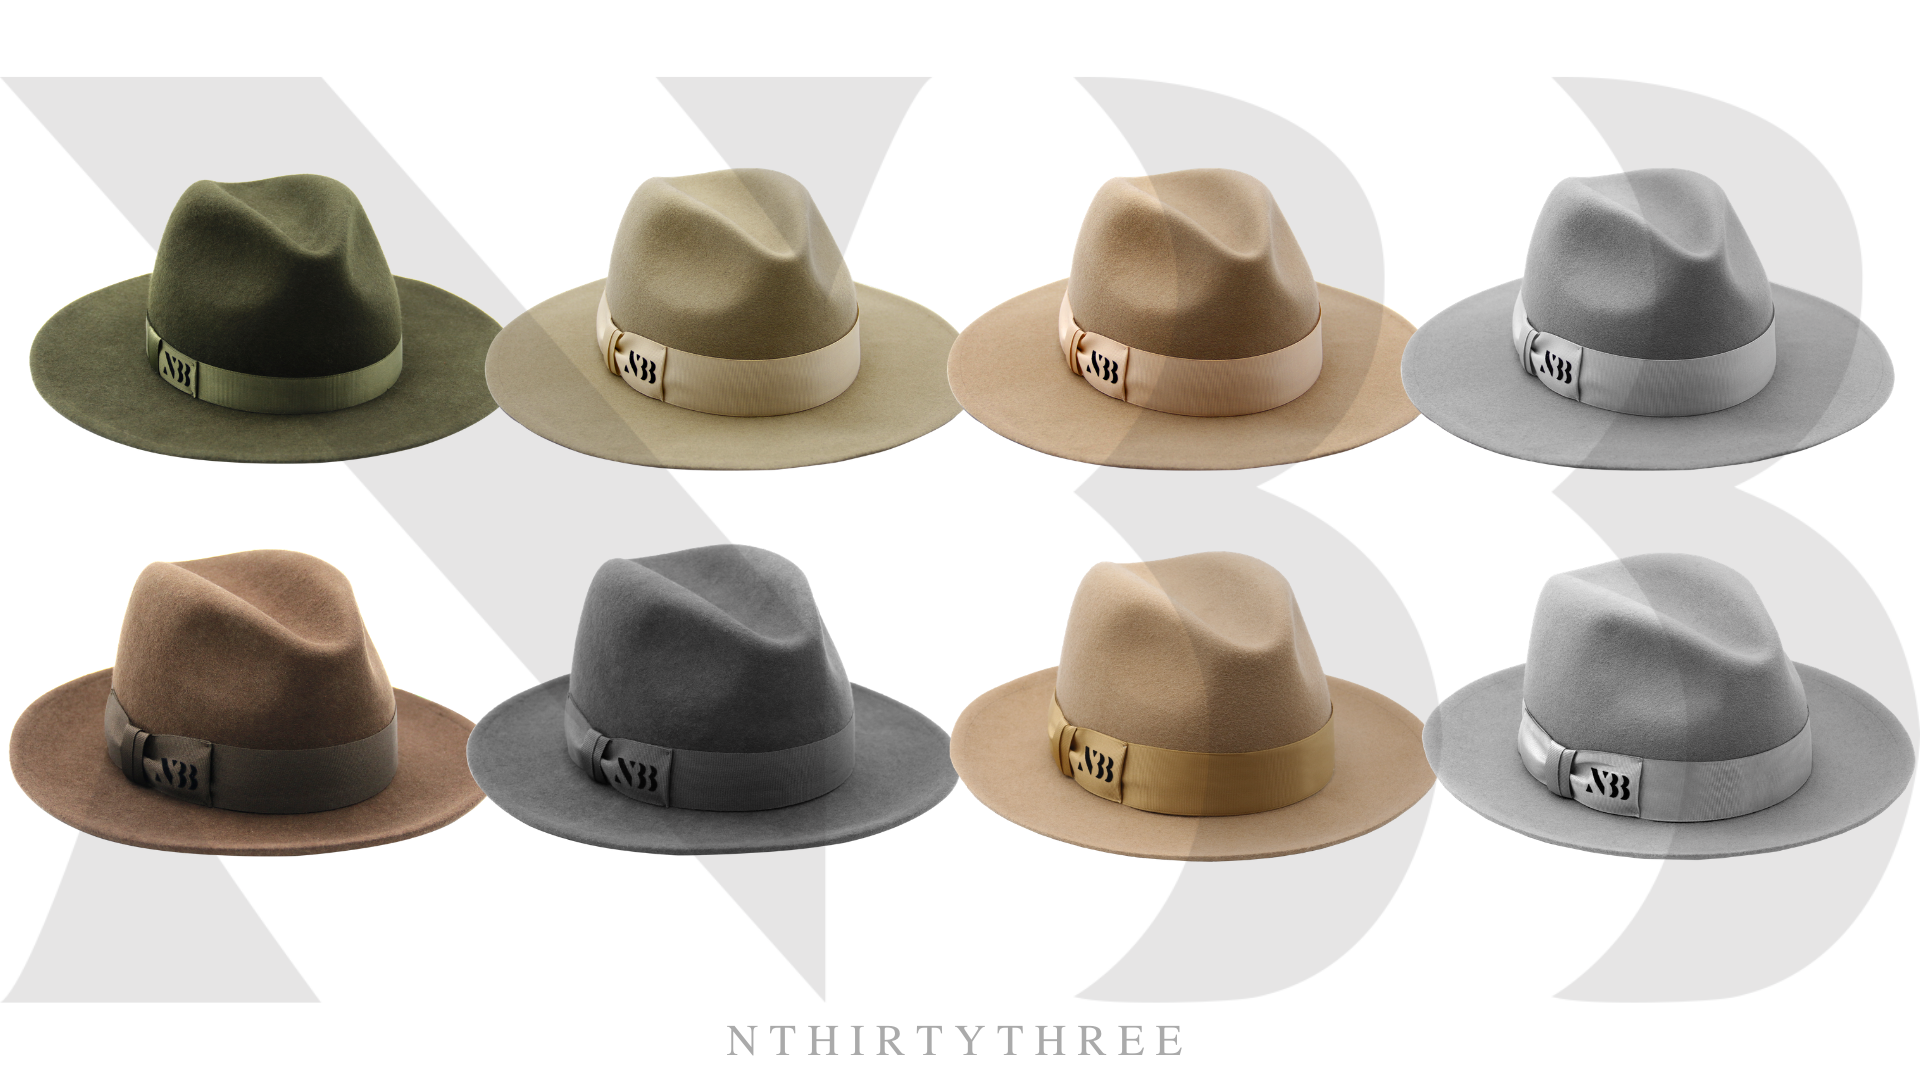 The Fedora Hat Collection of NTHIRTYTHREE